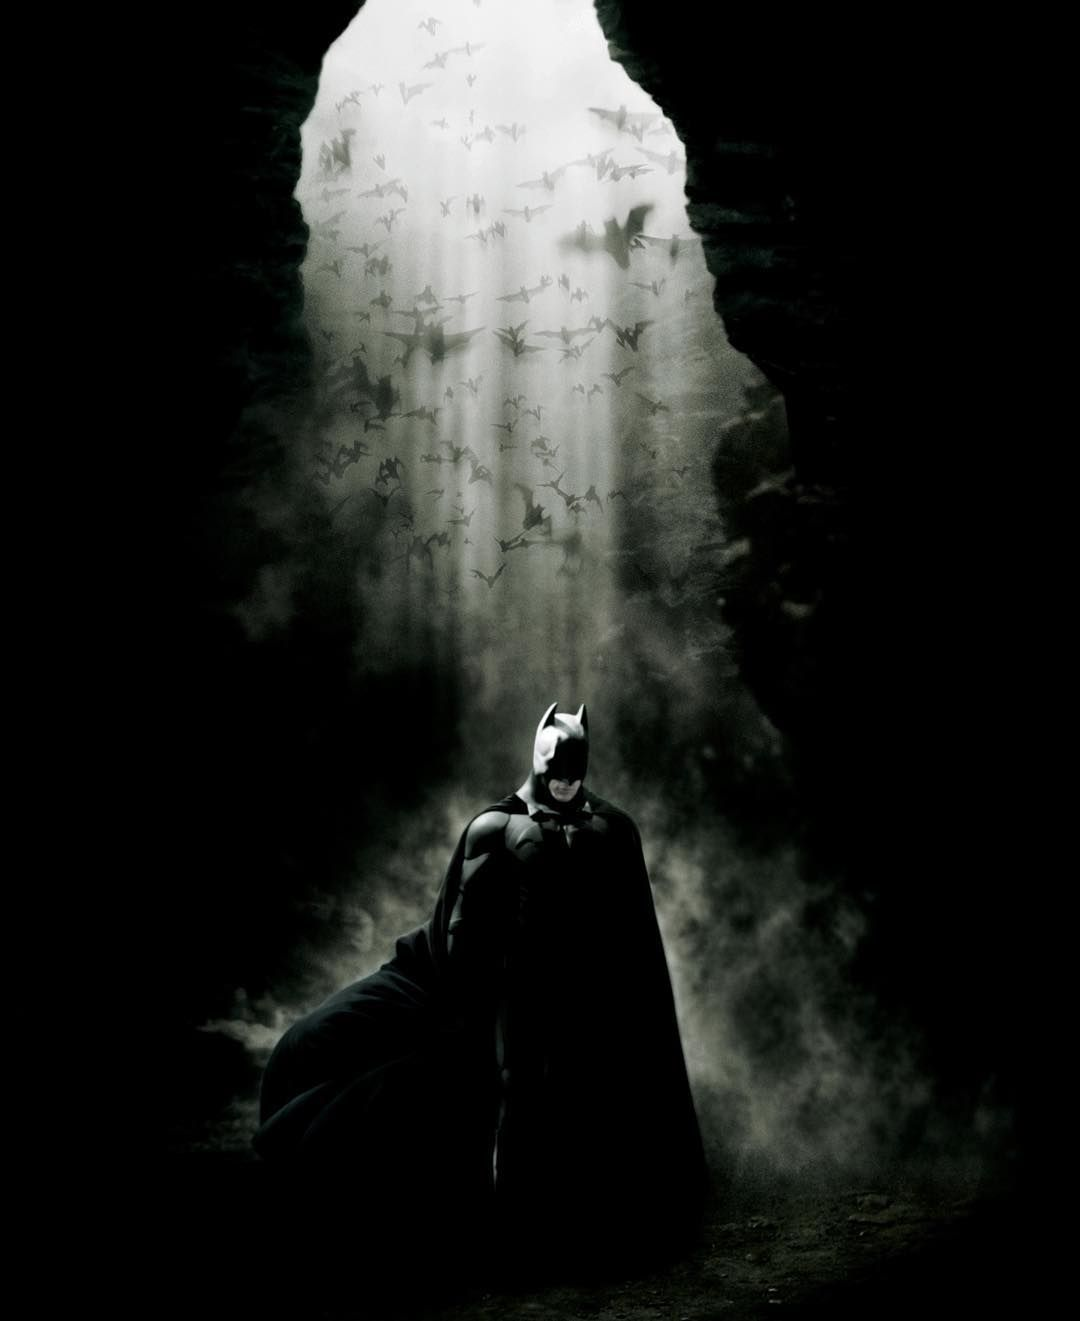 Batman Begins | The dark knight | Batman wallpaper, Batman